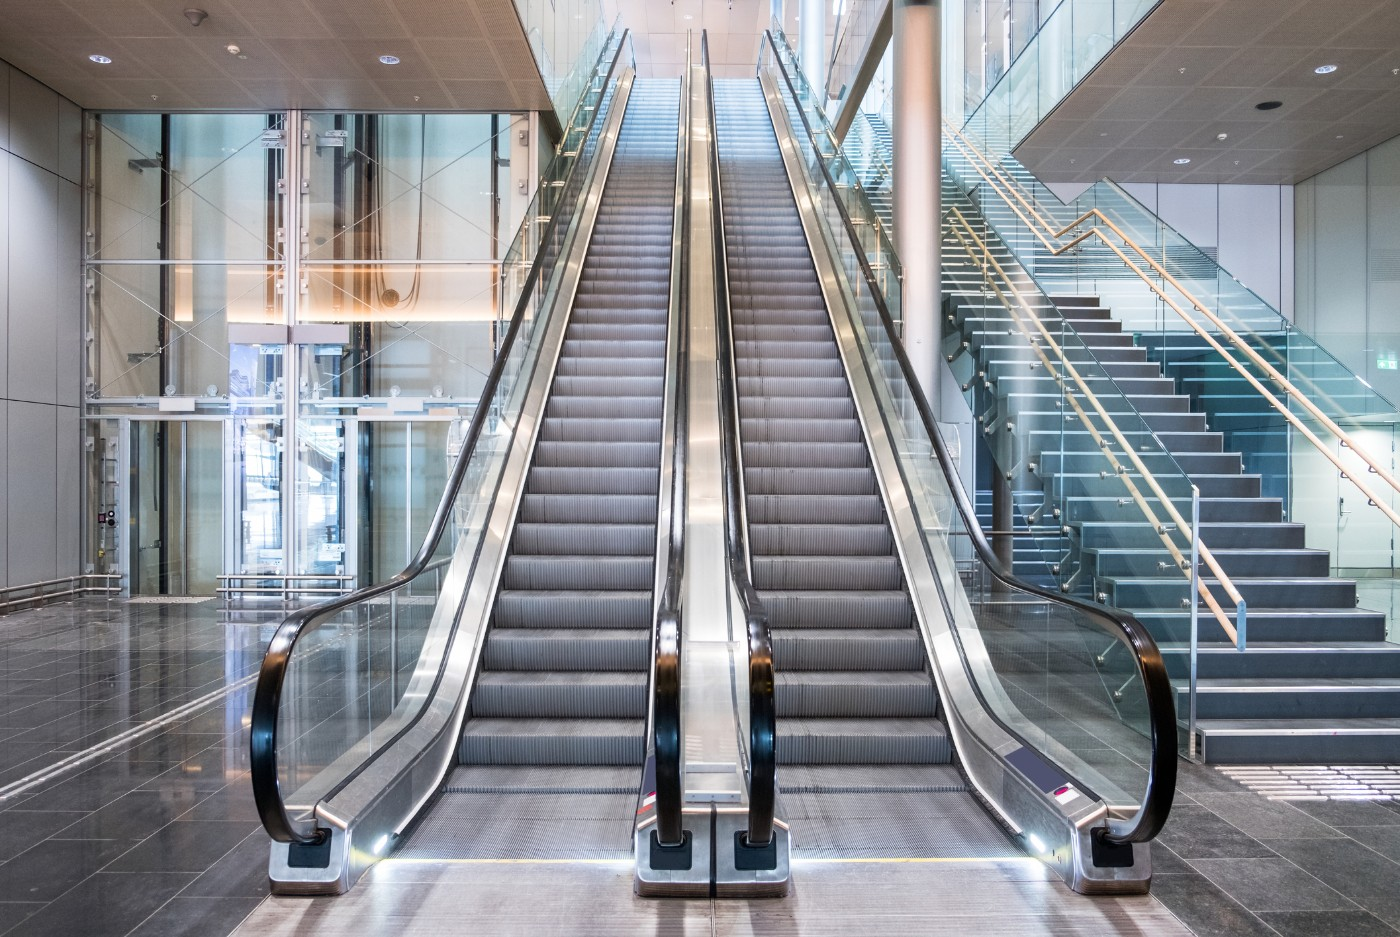 https://tickertapecdn.tdameritrade.com/assets/images/pages/md/Empty mall: retail shopping trends